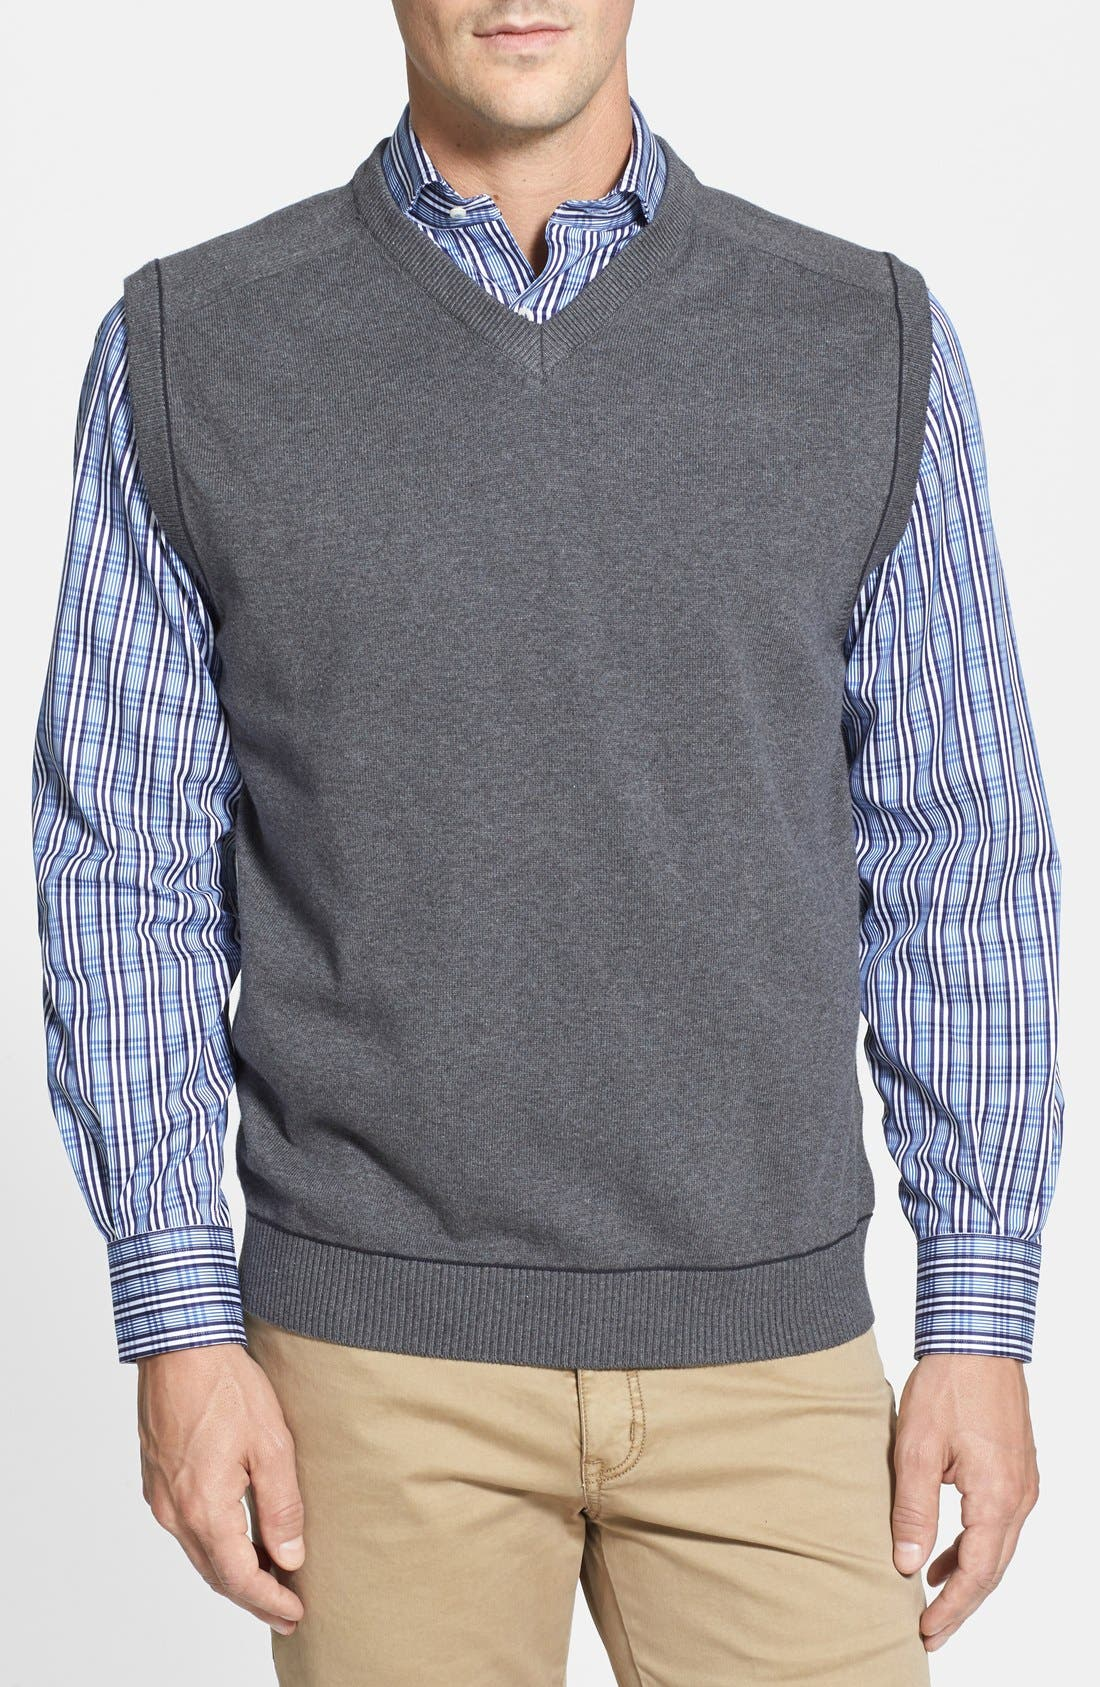 Main Image - Cutter & Buck Broadview V-Neck Sweater Vest